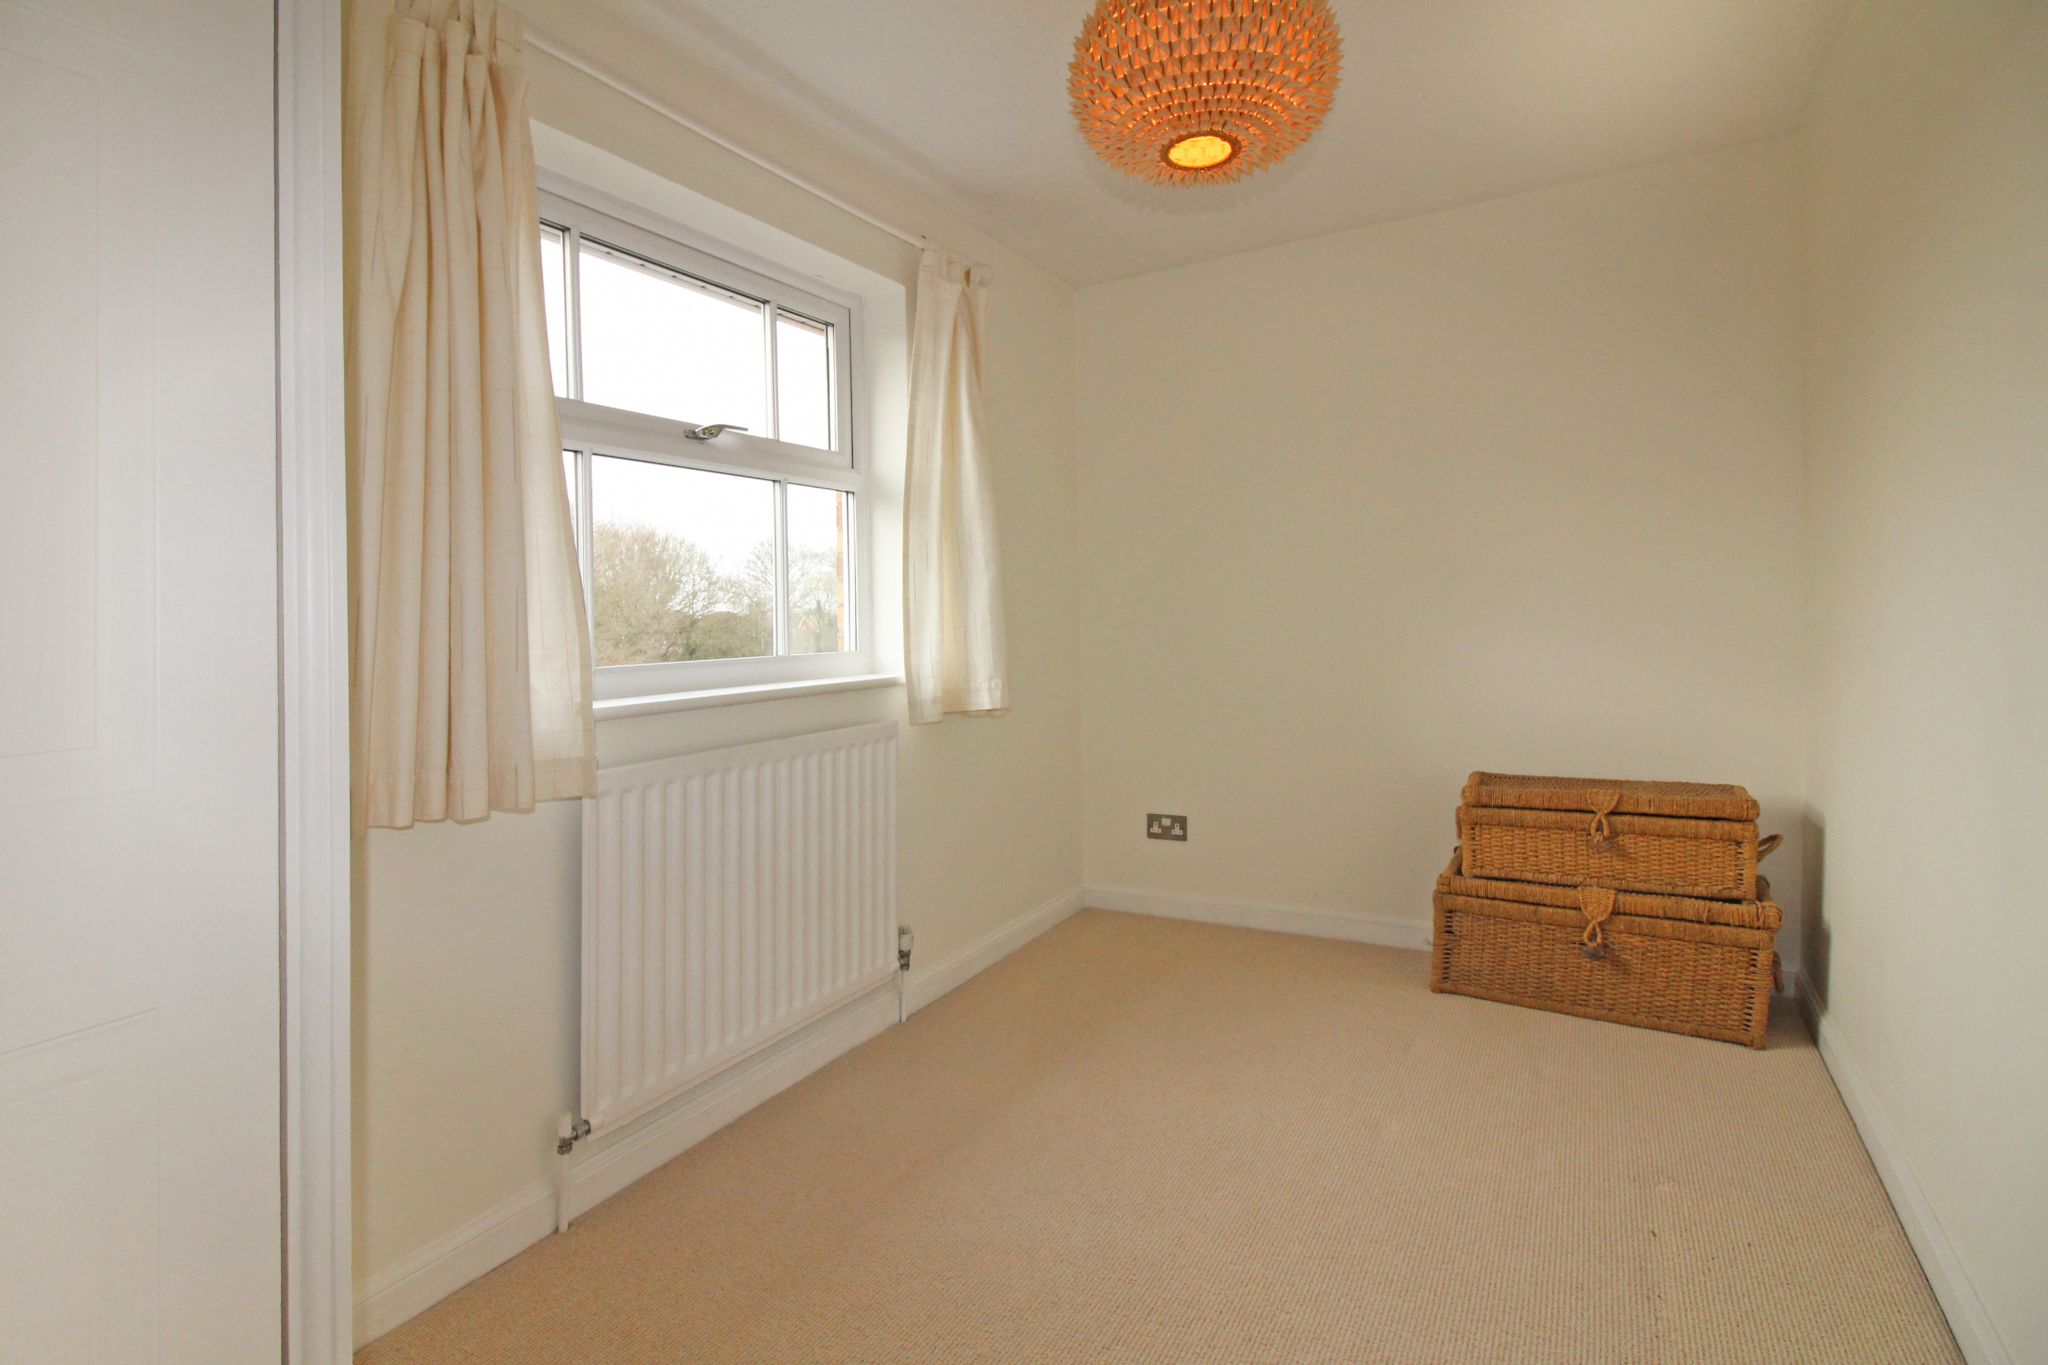 5 bedroom detached house SSTC in Solihull - Photograph 18.